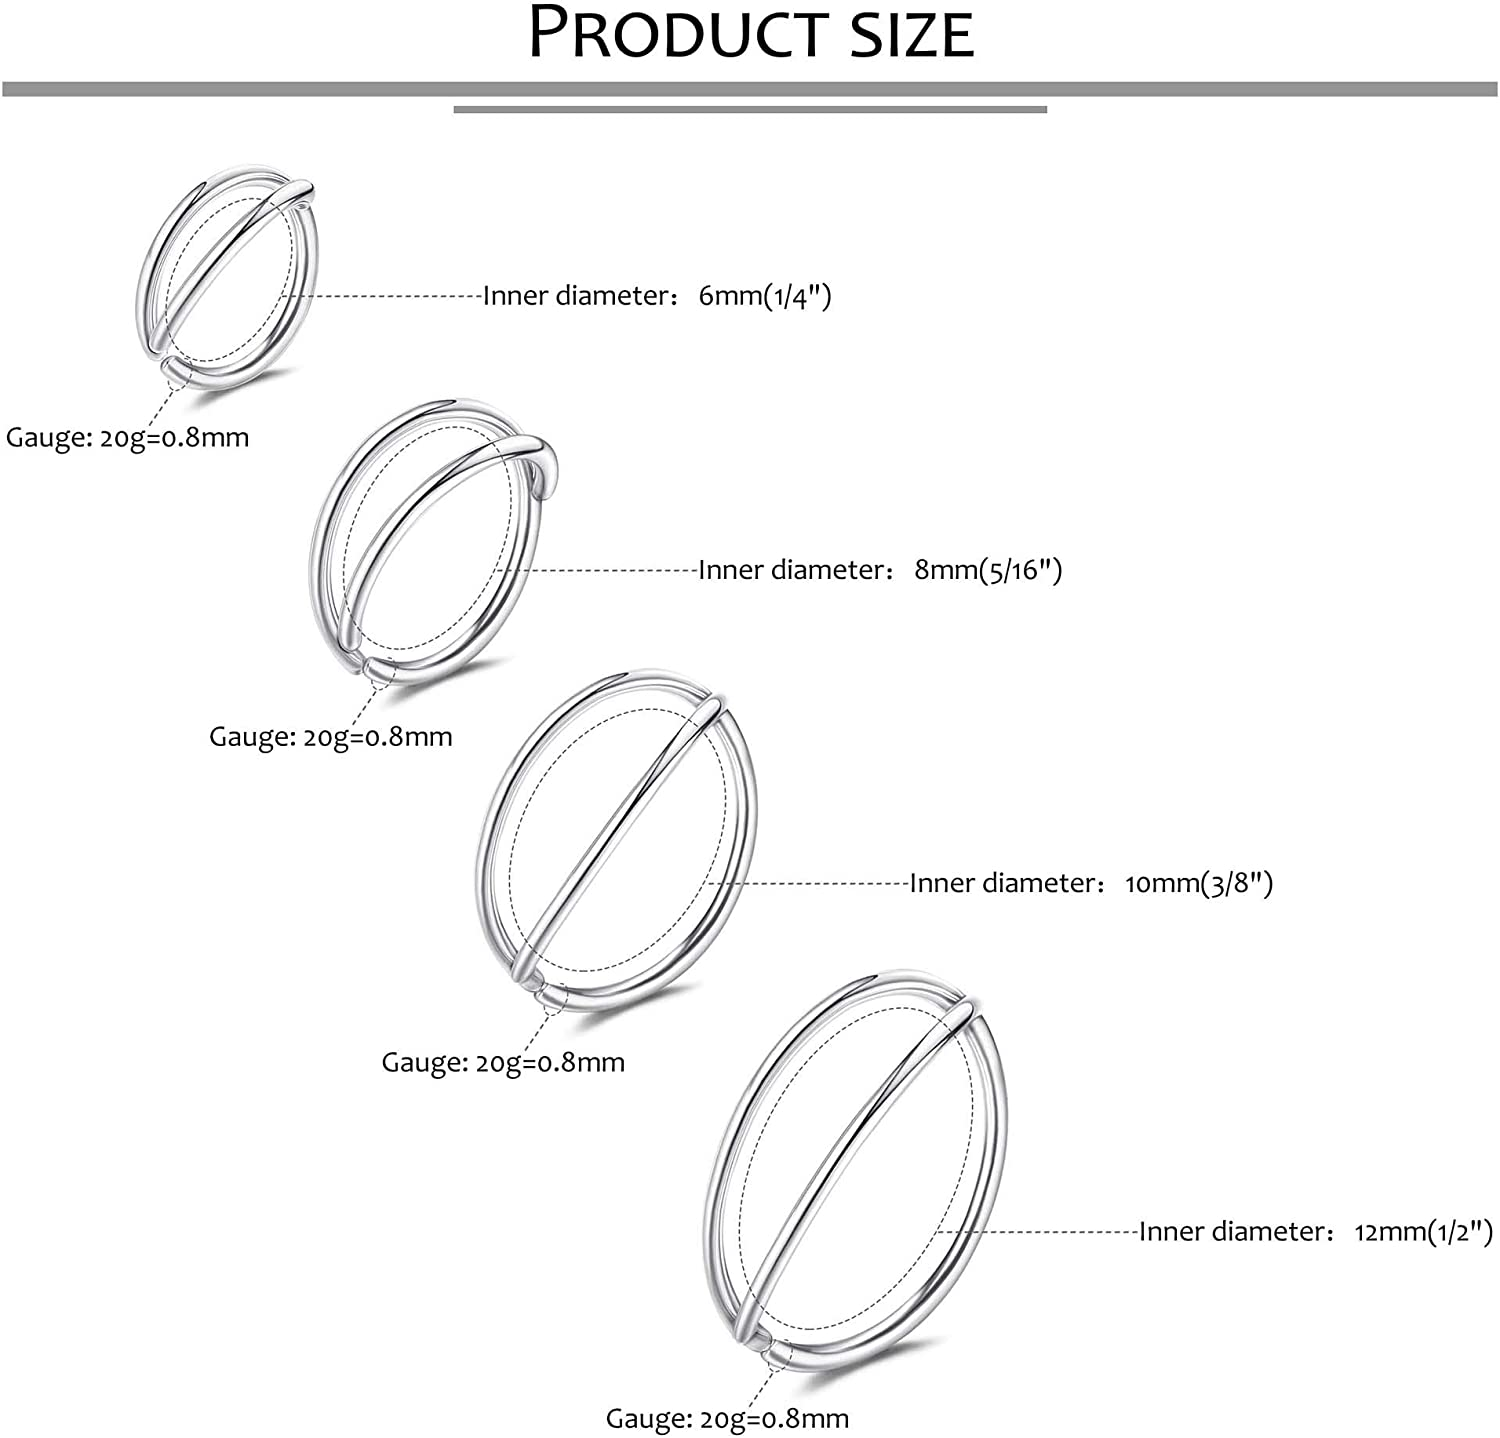 BodyBonita 6-18pcs Nose Rings Hoop for Women, Hypoallergenic Thin 20g Double Layered Nose Ring Hoop Septum Ring Cartilage Earring Conch Hoop Body Piercing Jewelry 6/8/10/12mm